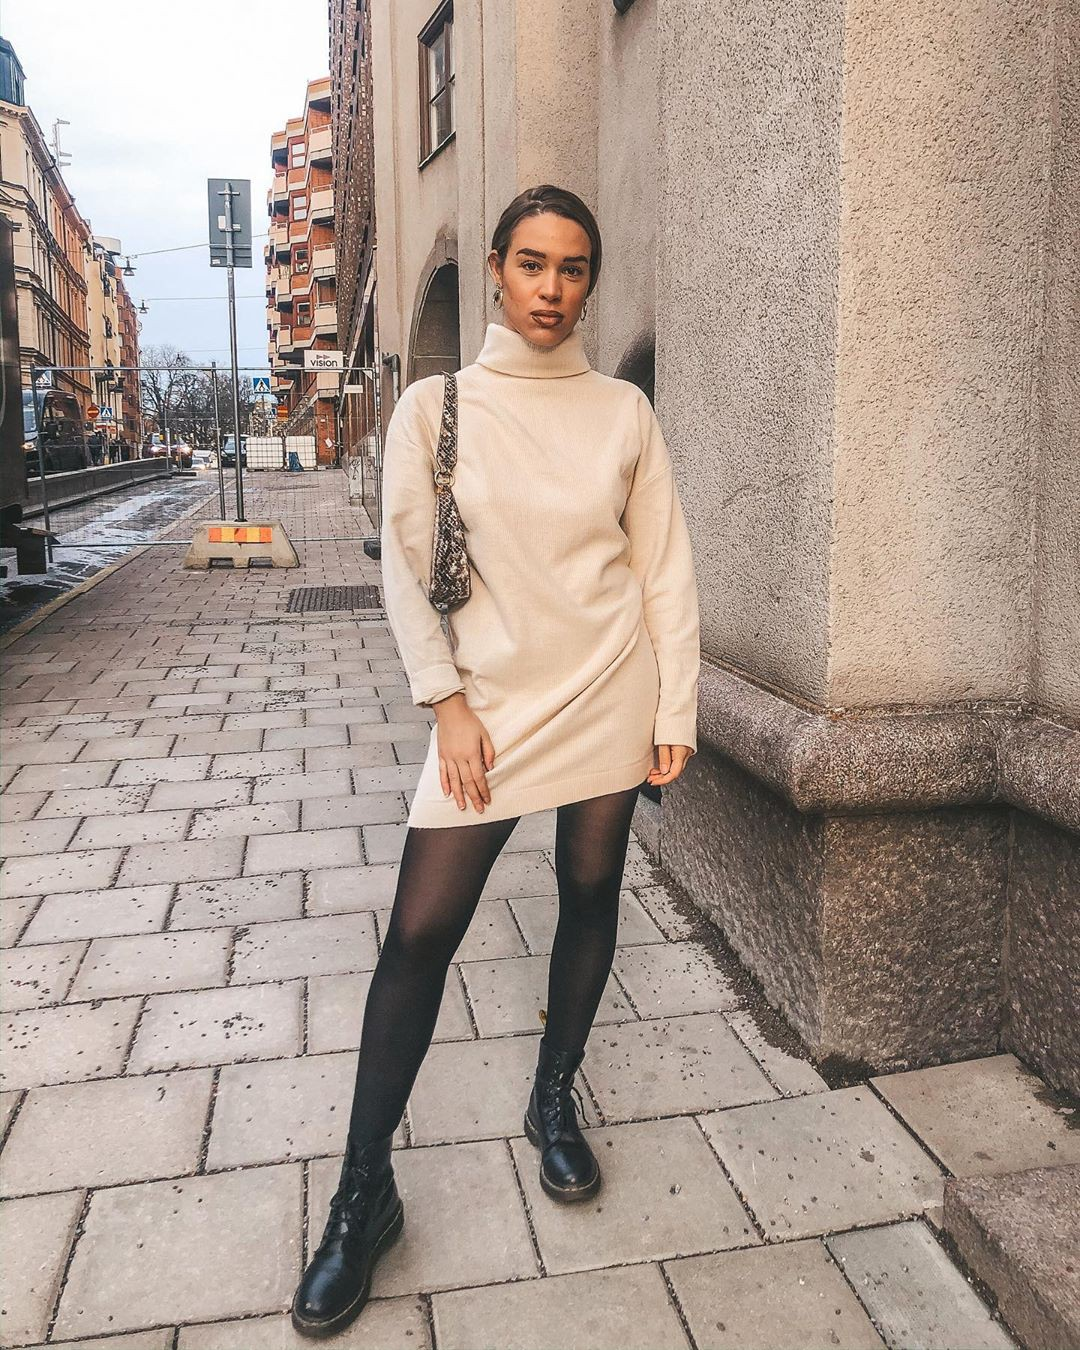 Isabelle Tounsi model photography, outfit designs, street fashion